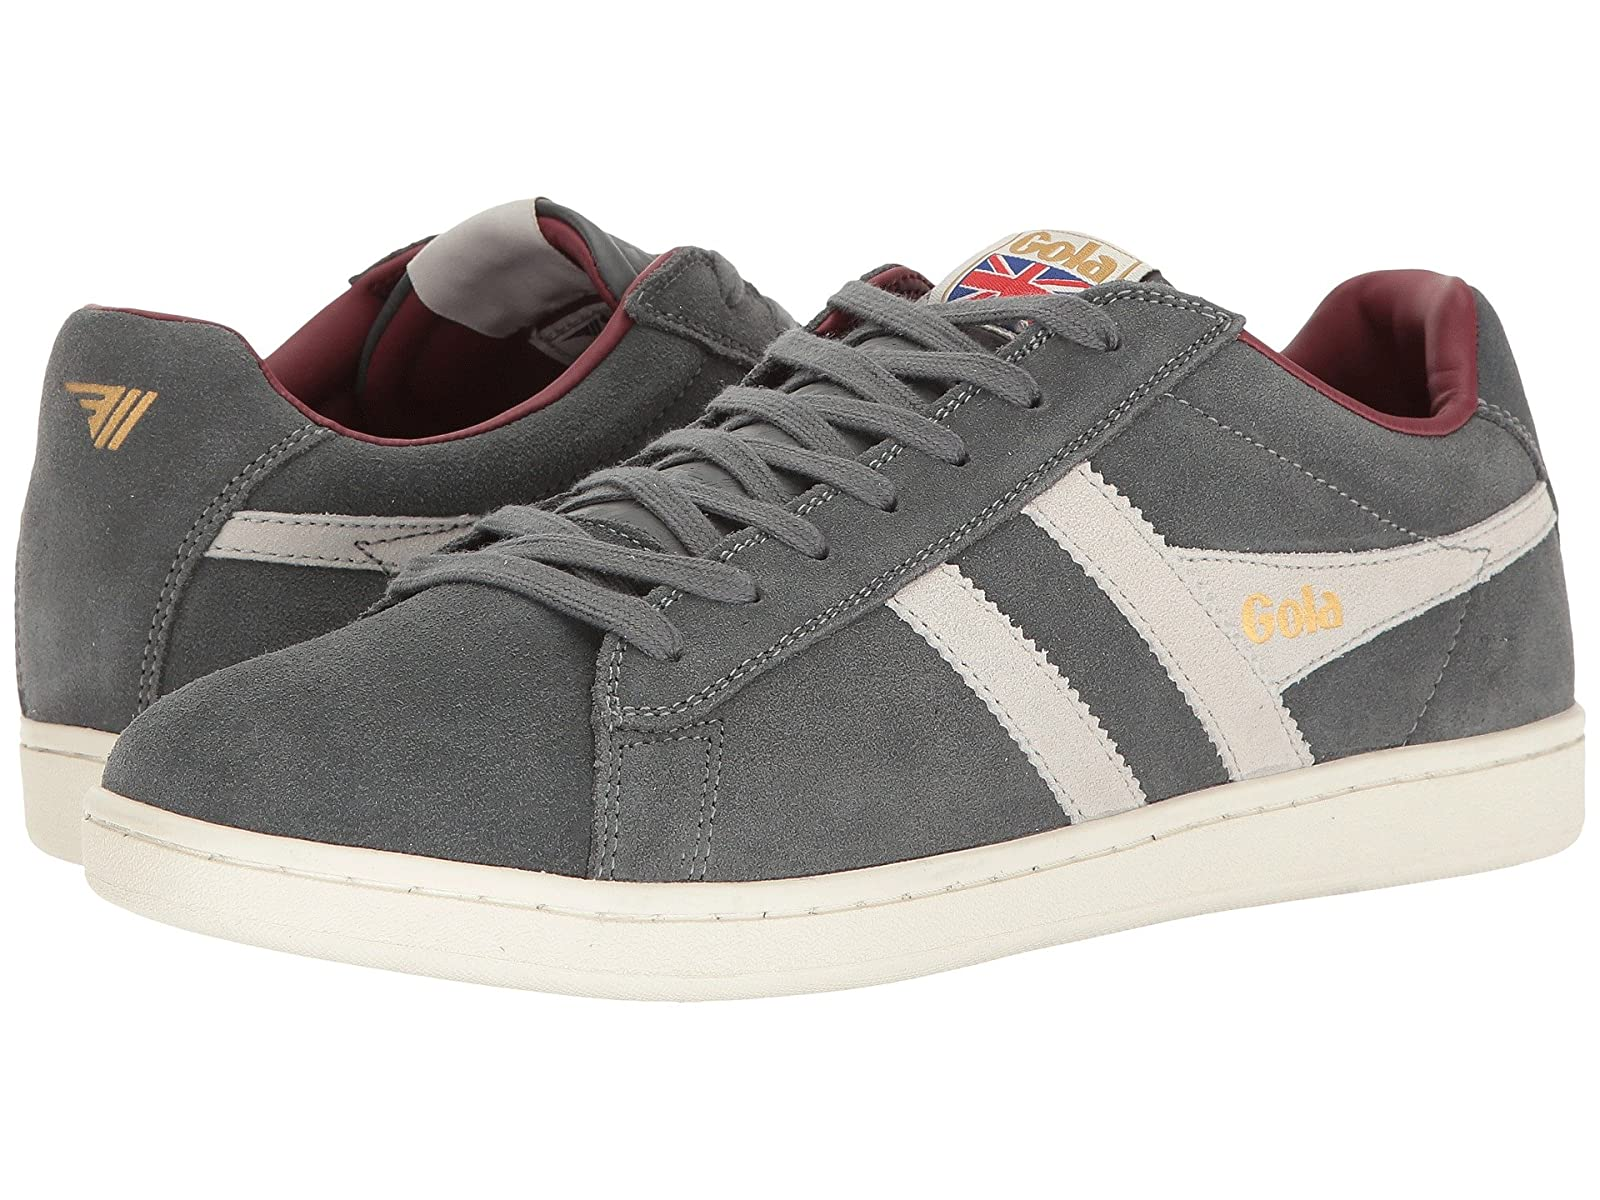 Gola Equipe SuedeCheap and distinctive eye-catching shoes